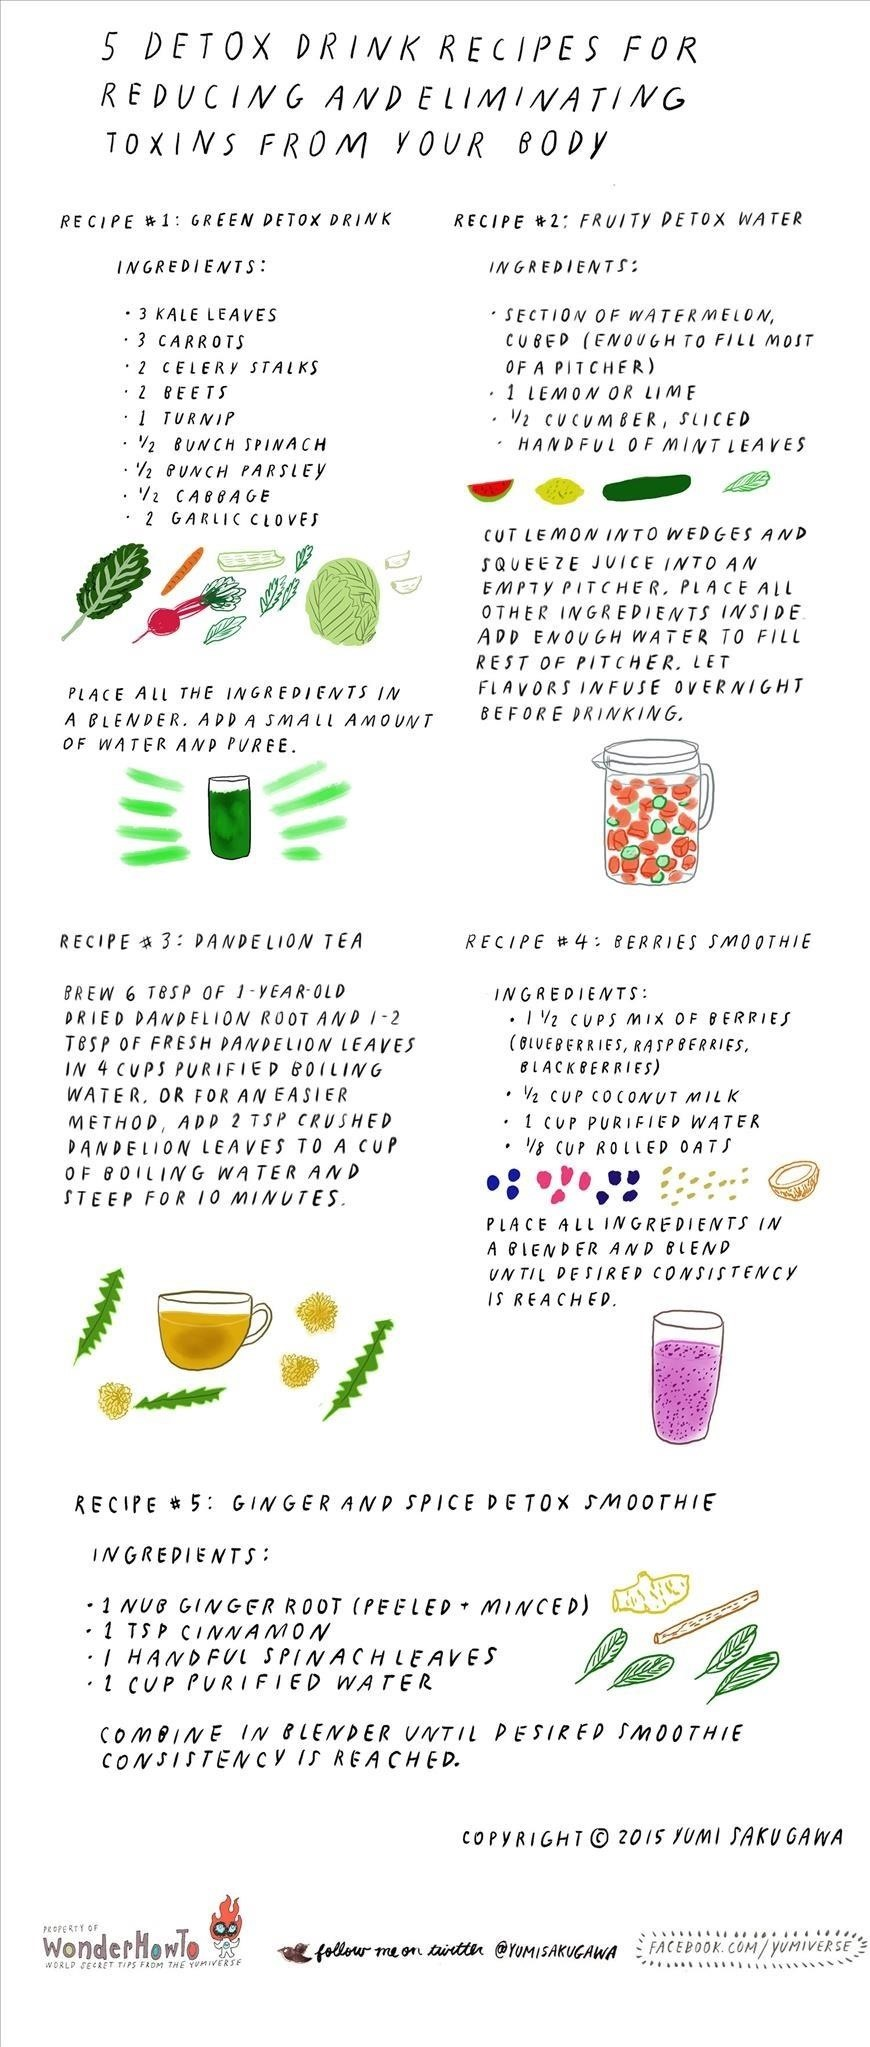 5 Detox Drink Recipes for Reducing & Eliminating Toxins from Your Body